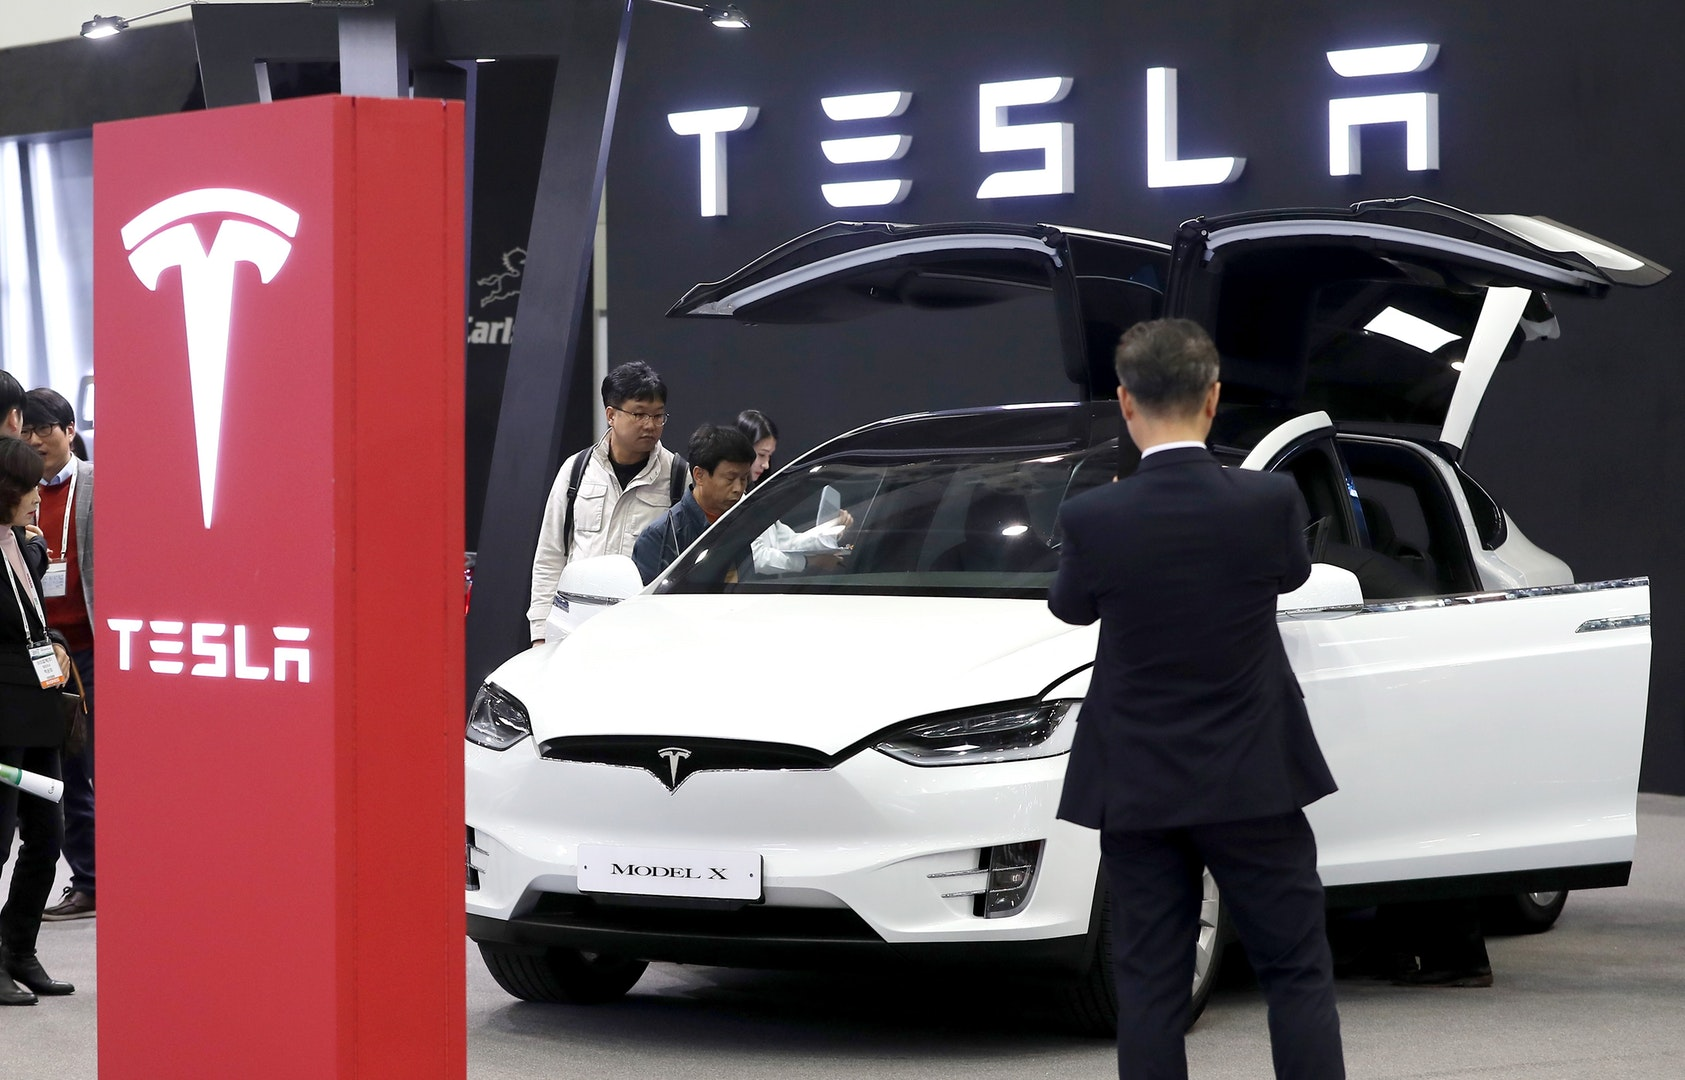 Tesla shares stumble on price cut, disappointing Model 3 deliveries